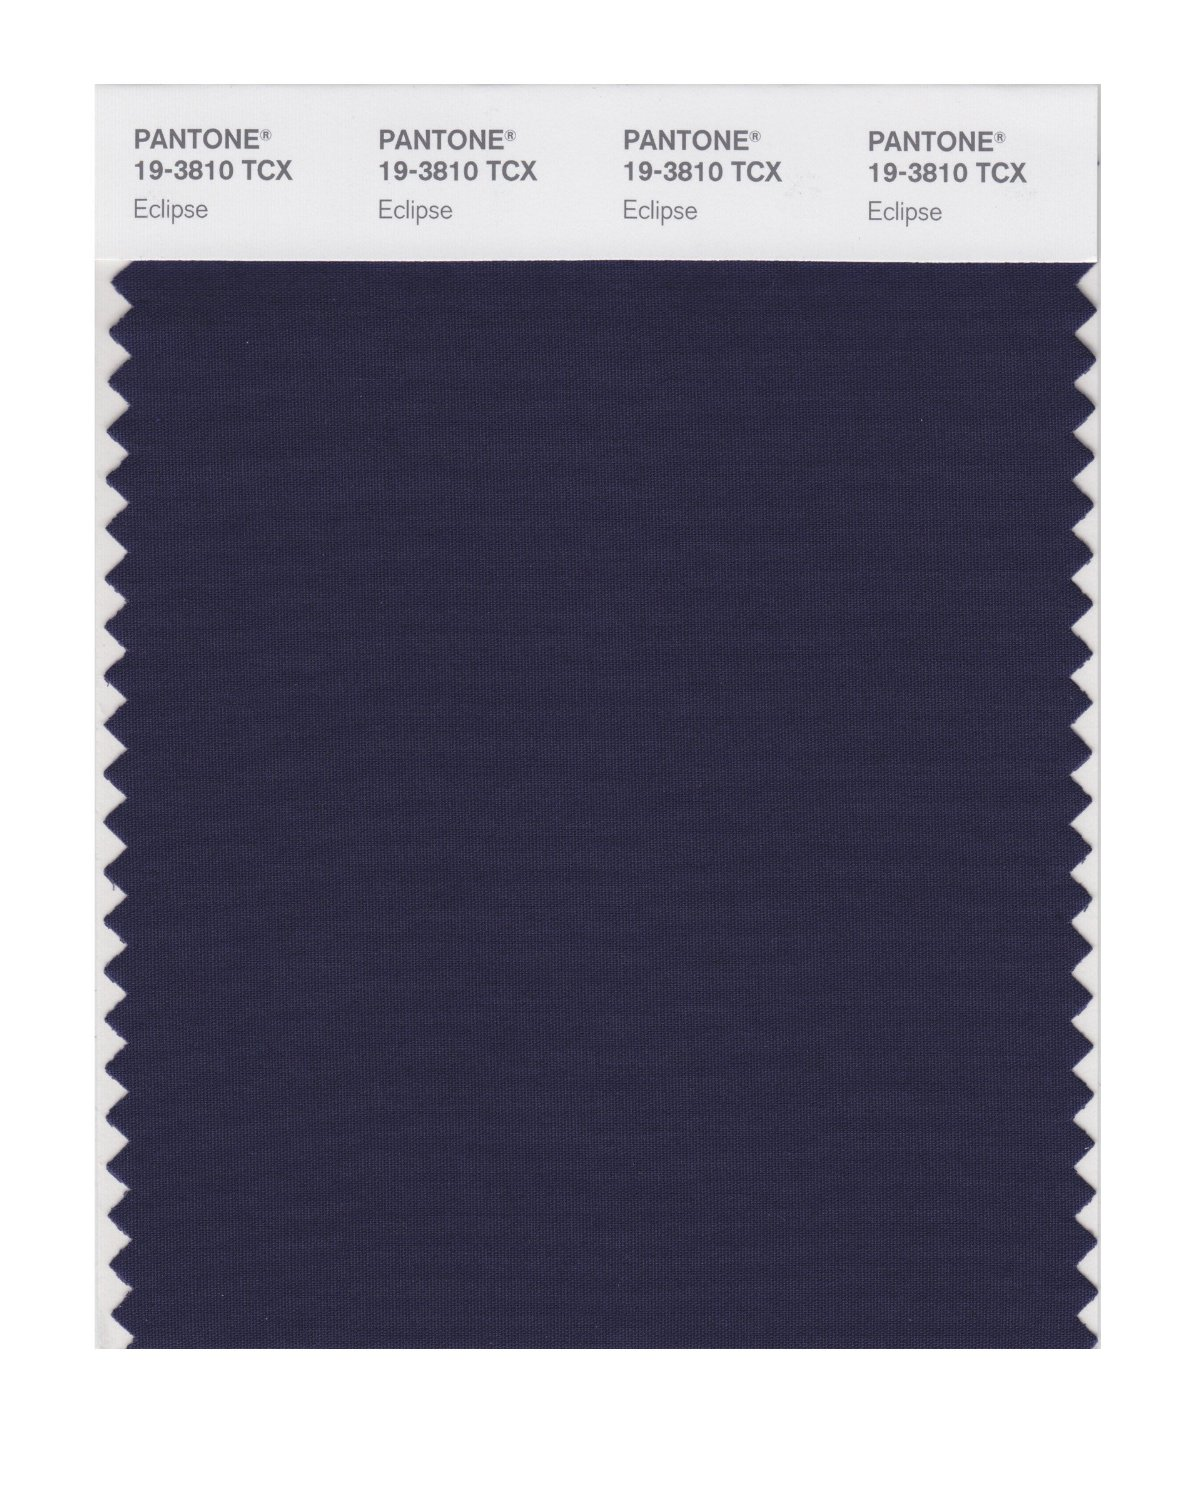 Pantone Smart Swatch 19-3810 Eclipse